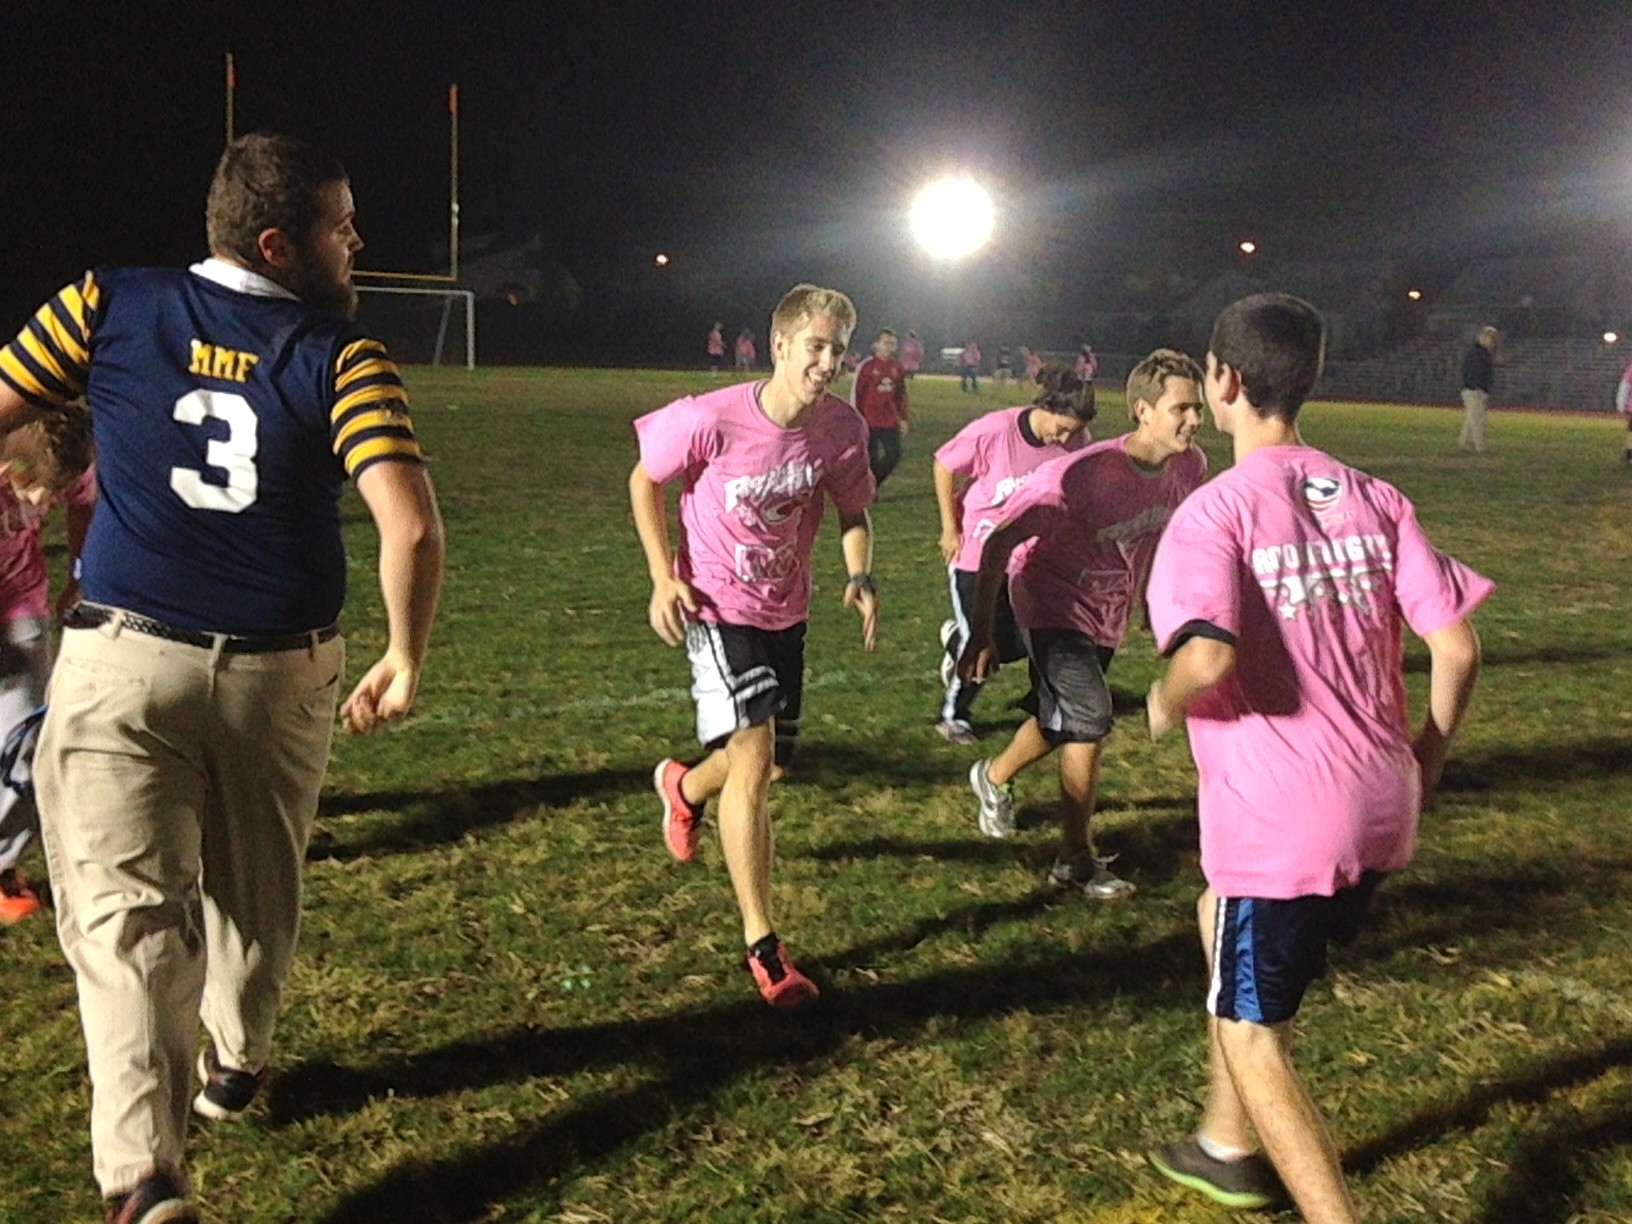 In cooperation with the Hofstra University Men's Rugby Club, USA Rugby and AIG, the Bellmore-Merrick Central HigH School District sponsored a clinic and rugby tournament for 75 district student-athletes on Oct. 17.